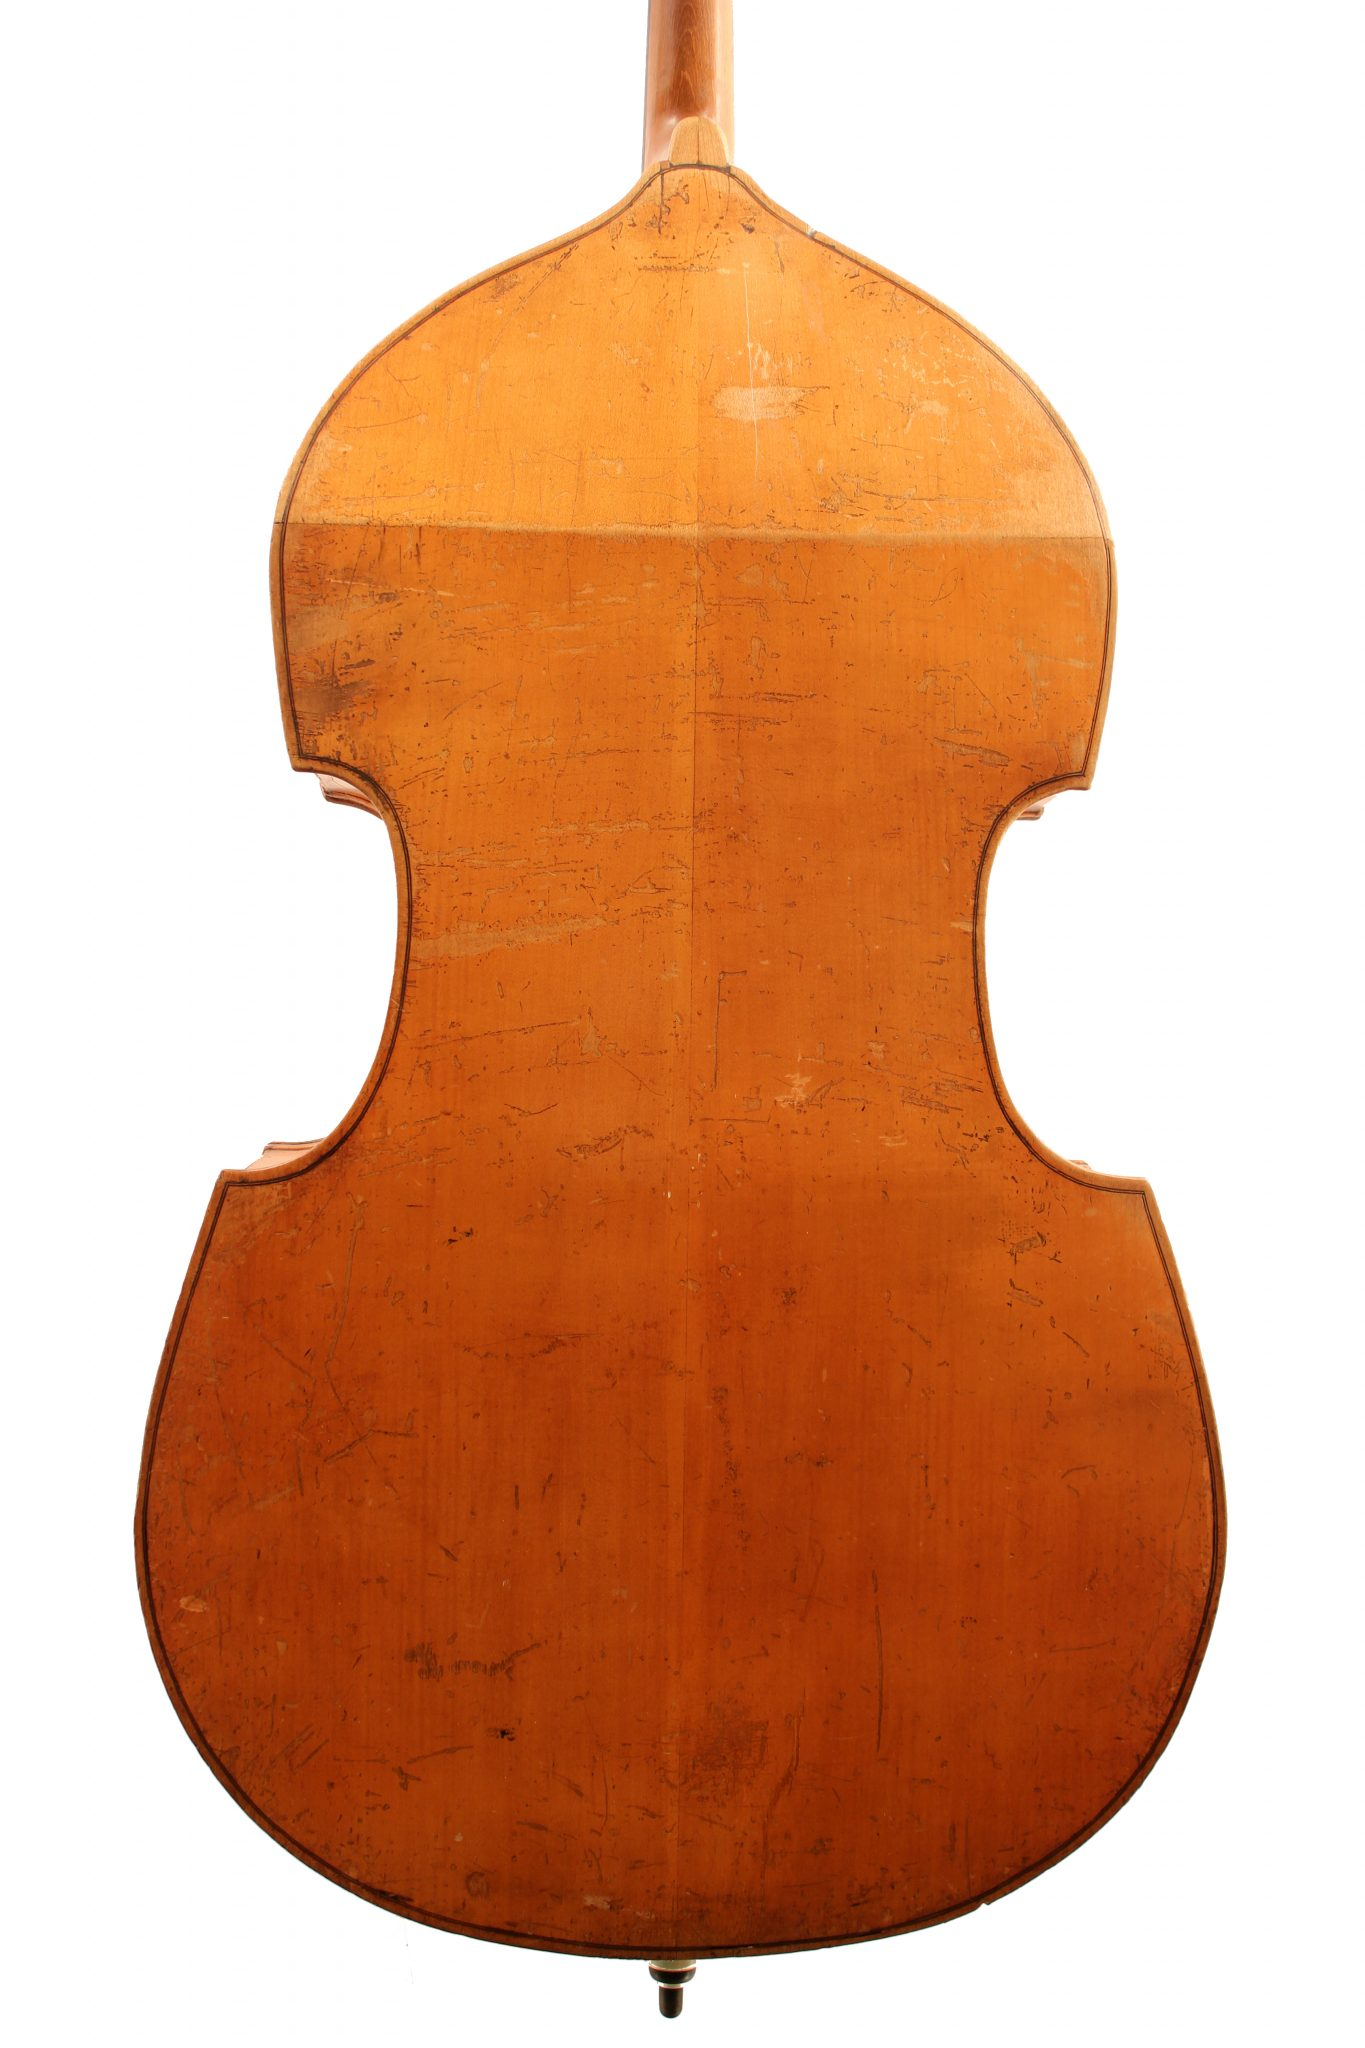 German double bass c1900 for sale at Bridgewood and Neitzert London